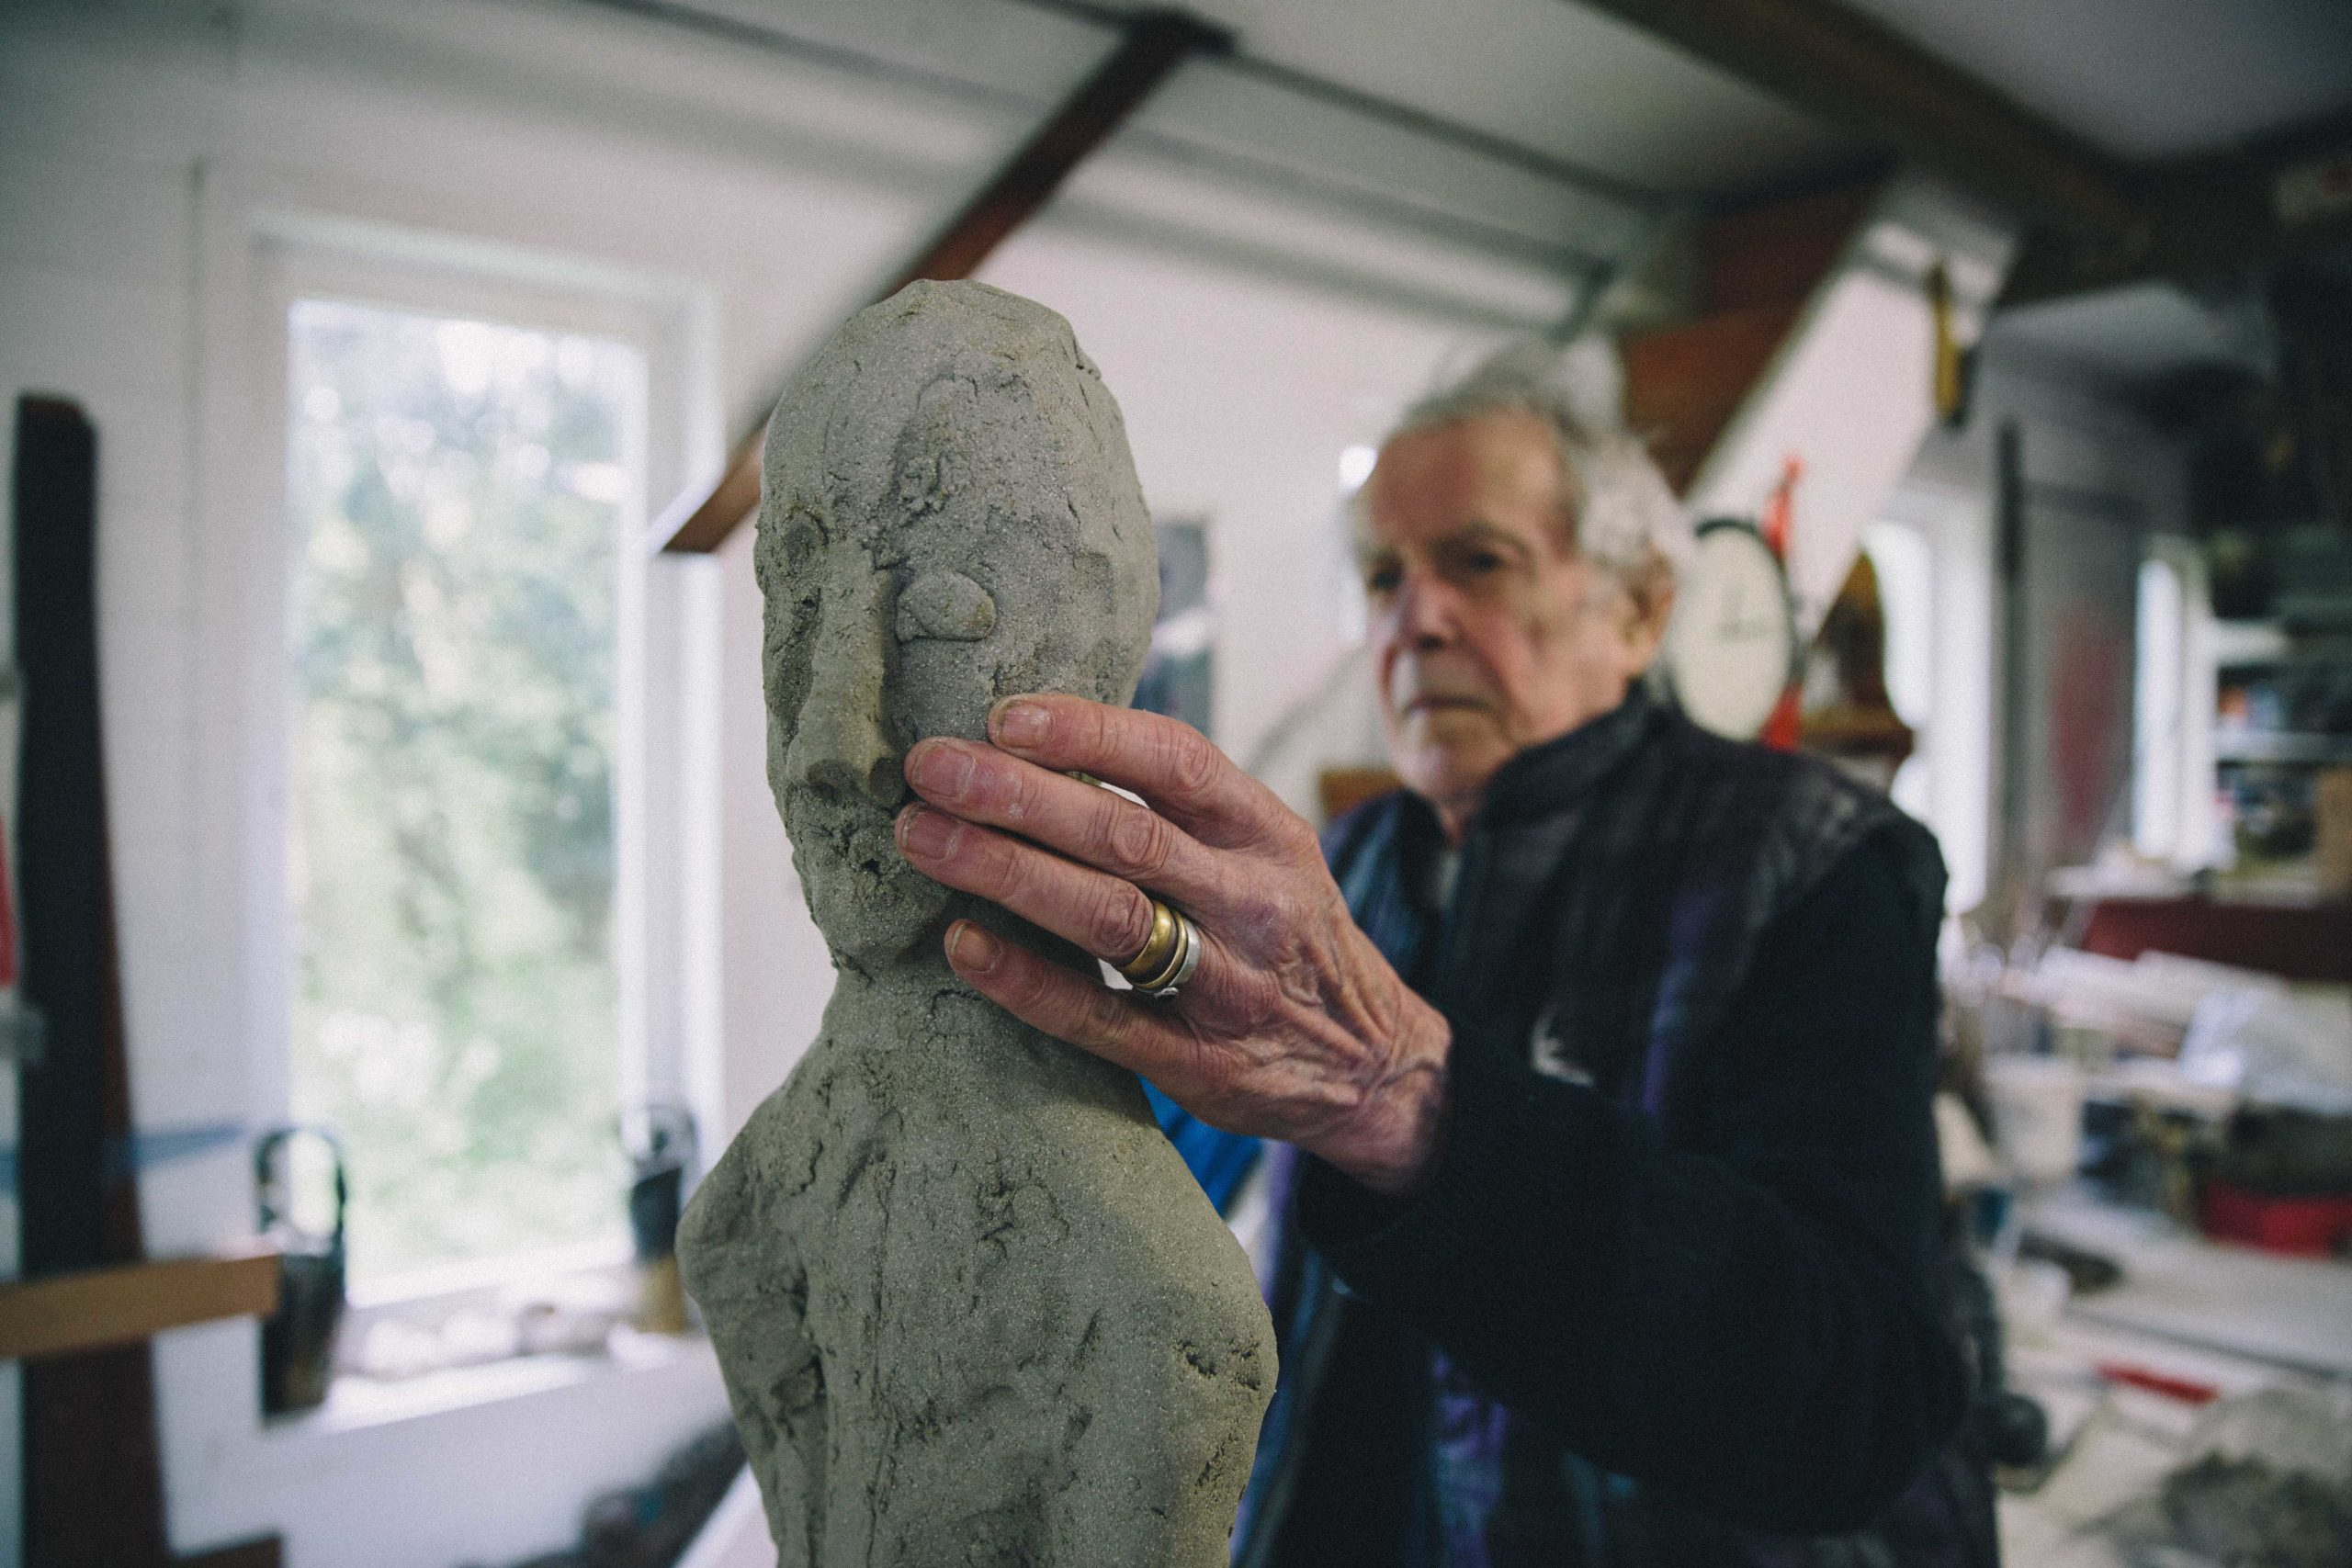 Ian Gregory sculpting a figure with clay